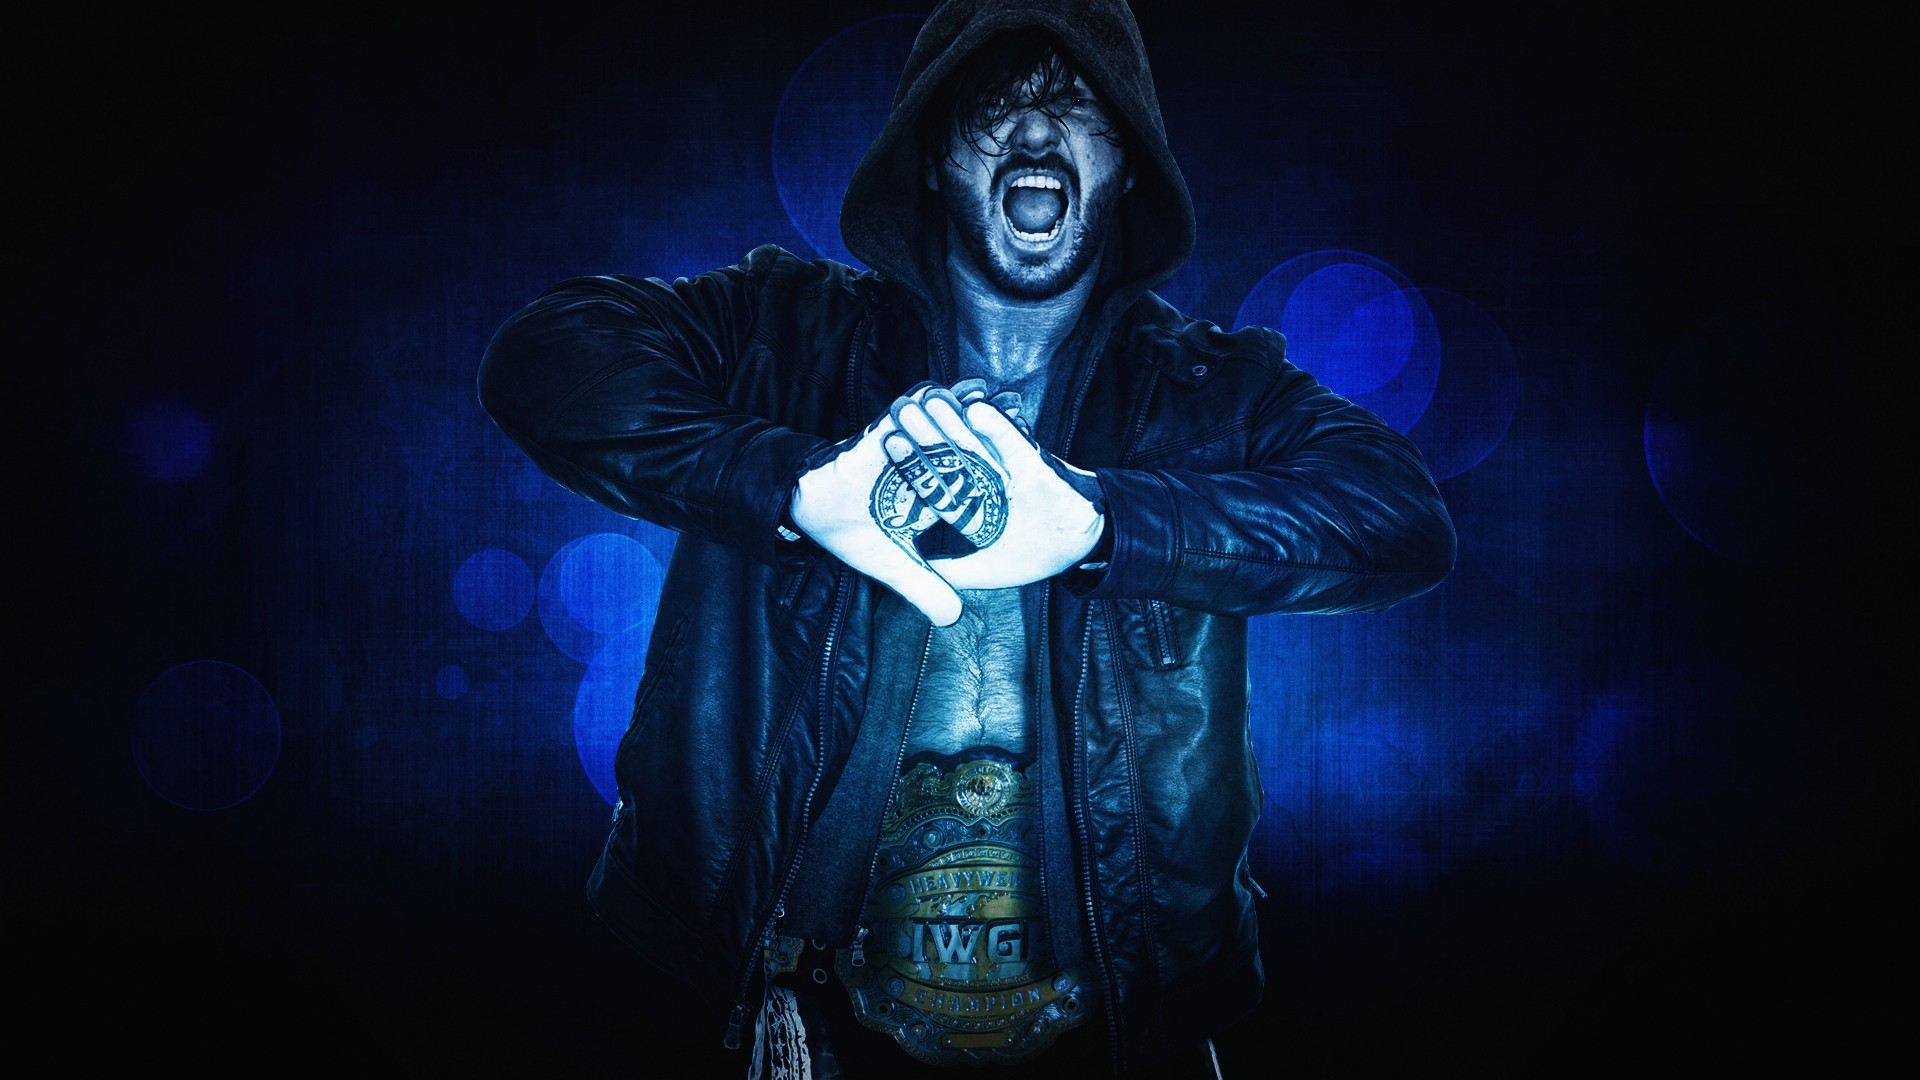 How To Make Live Wallpaper Work Iphone X Aj Styles Wallpaper 183 ① Download Free Cool Full Hd